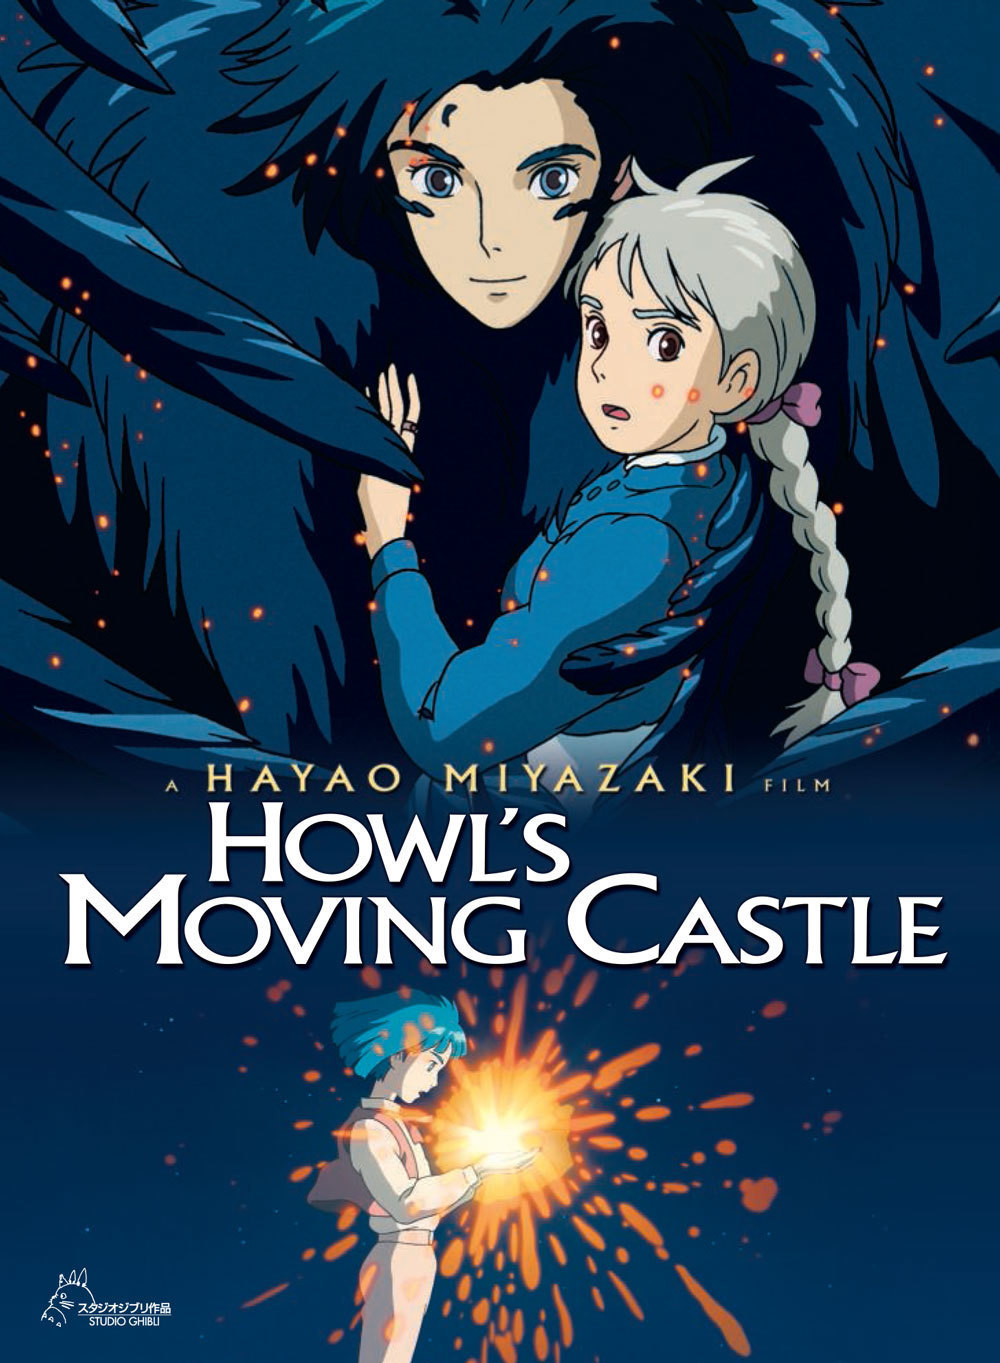 Howl's Moving Castle - English Poster.jpeg